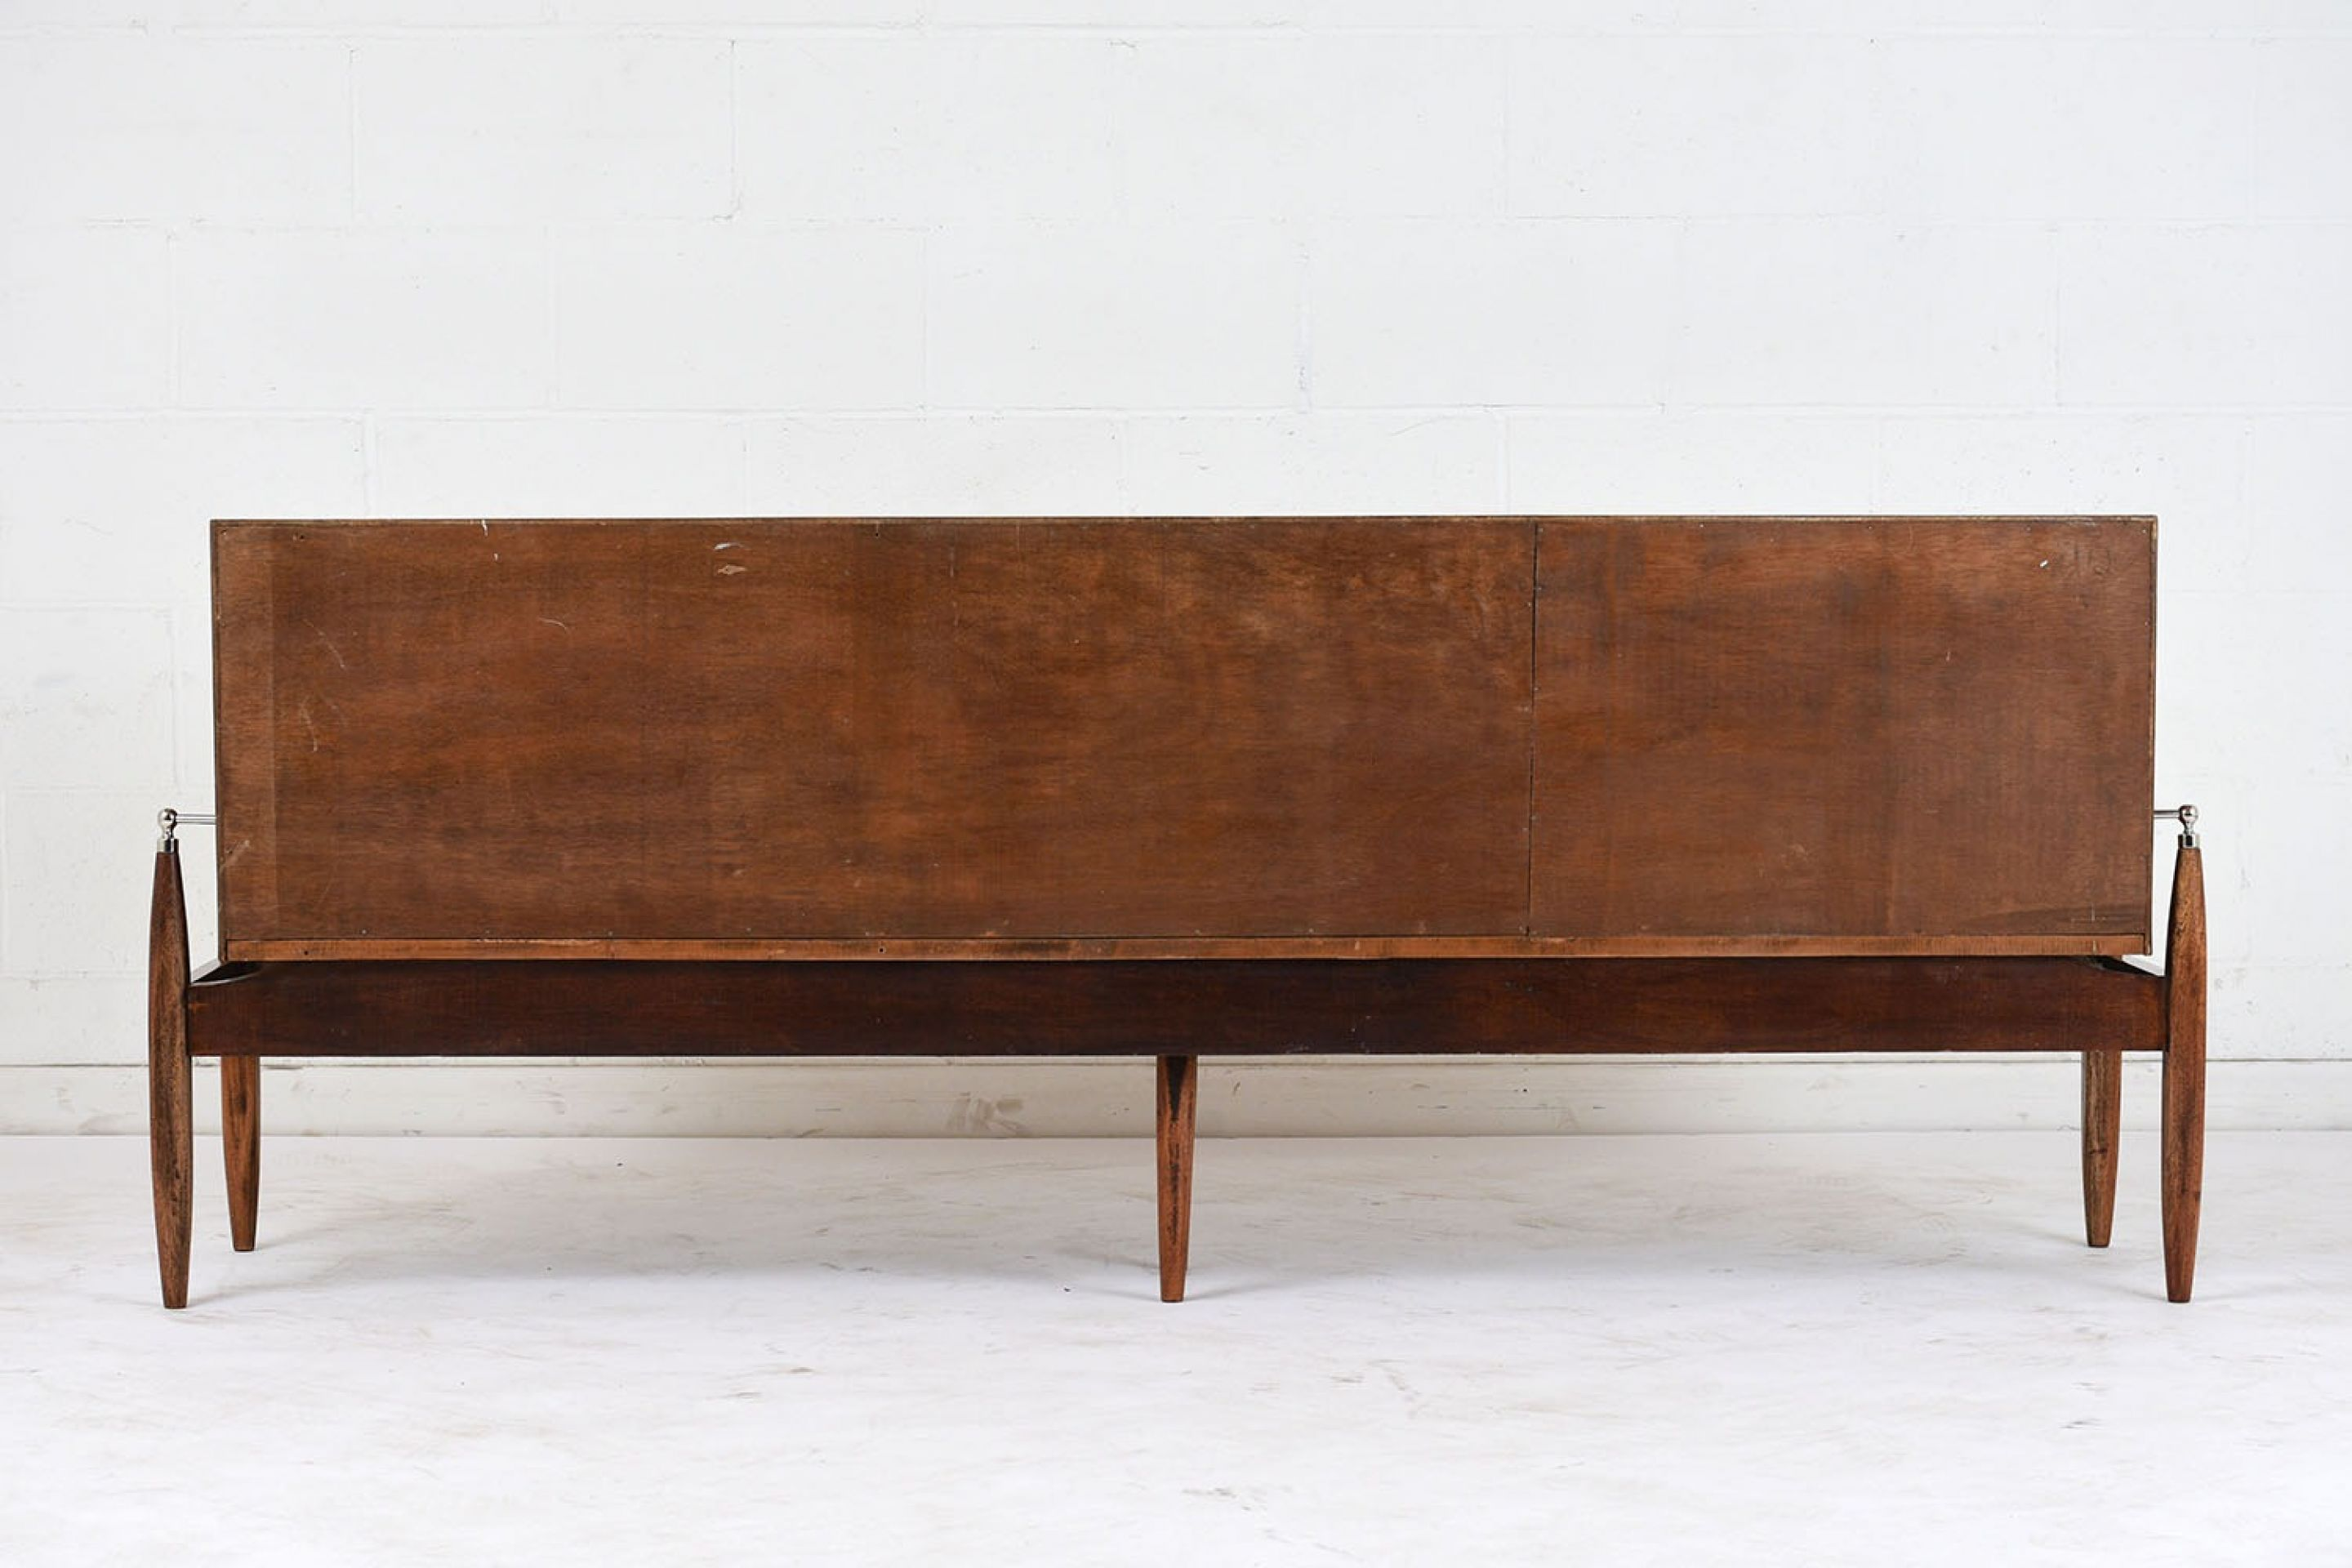 Pair of Mid-Century Modern-style Credenza